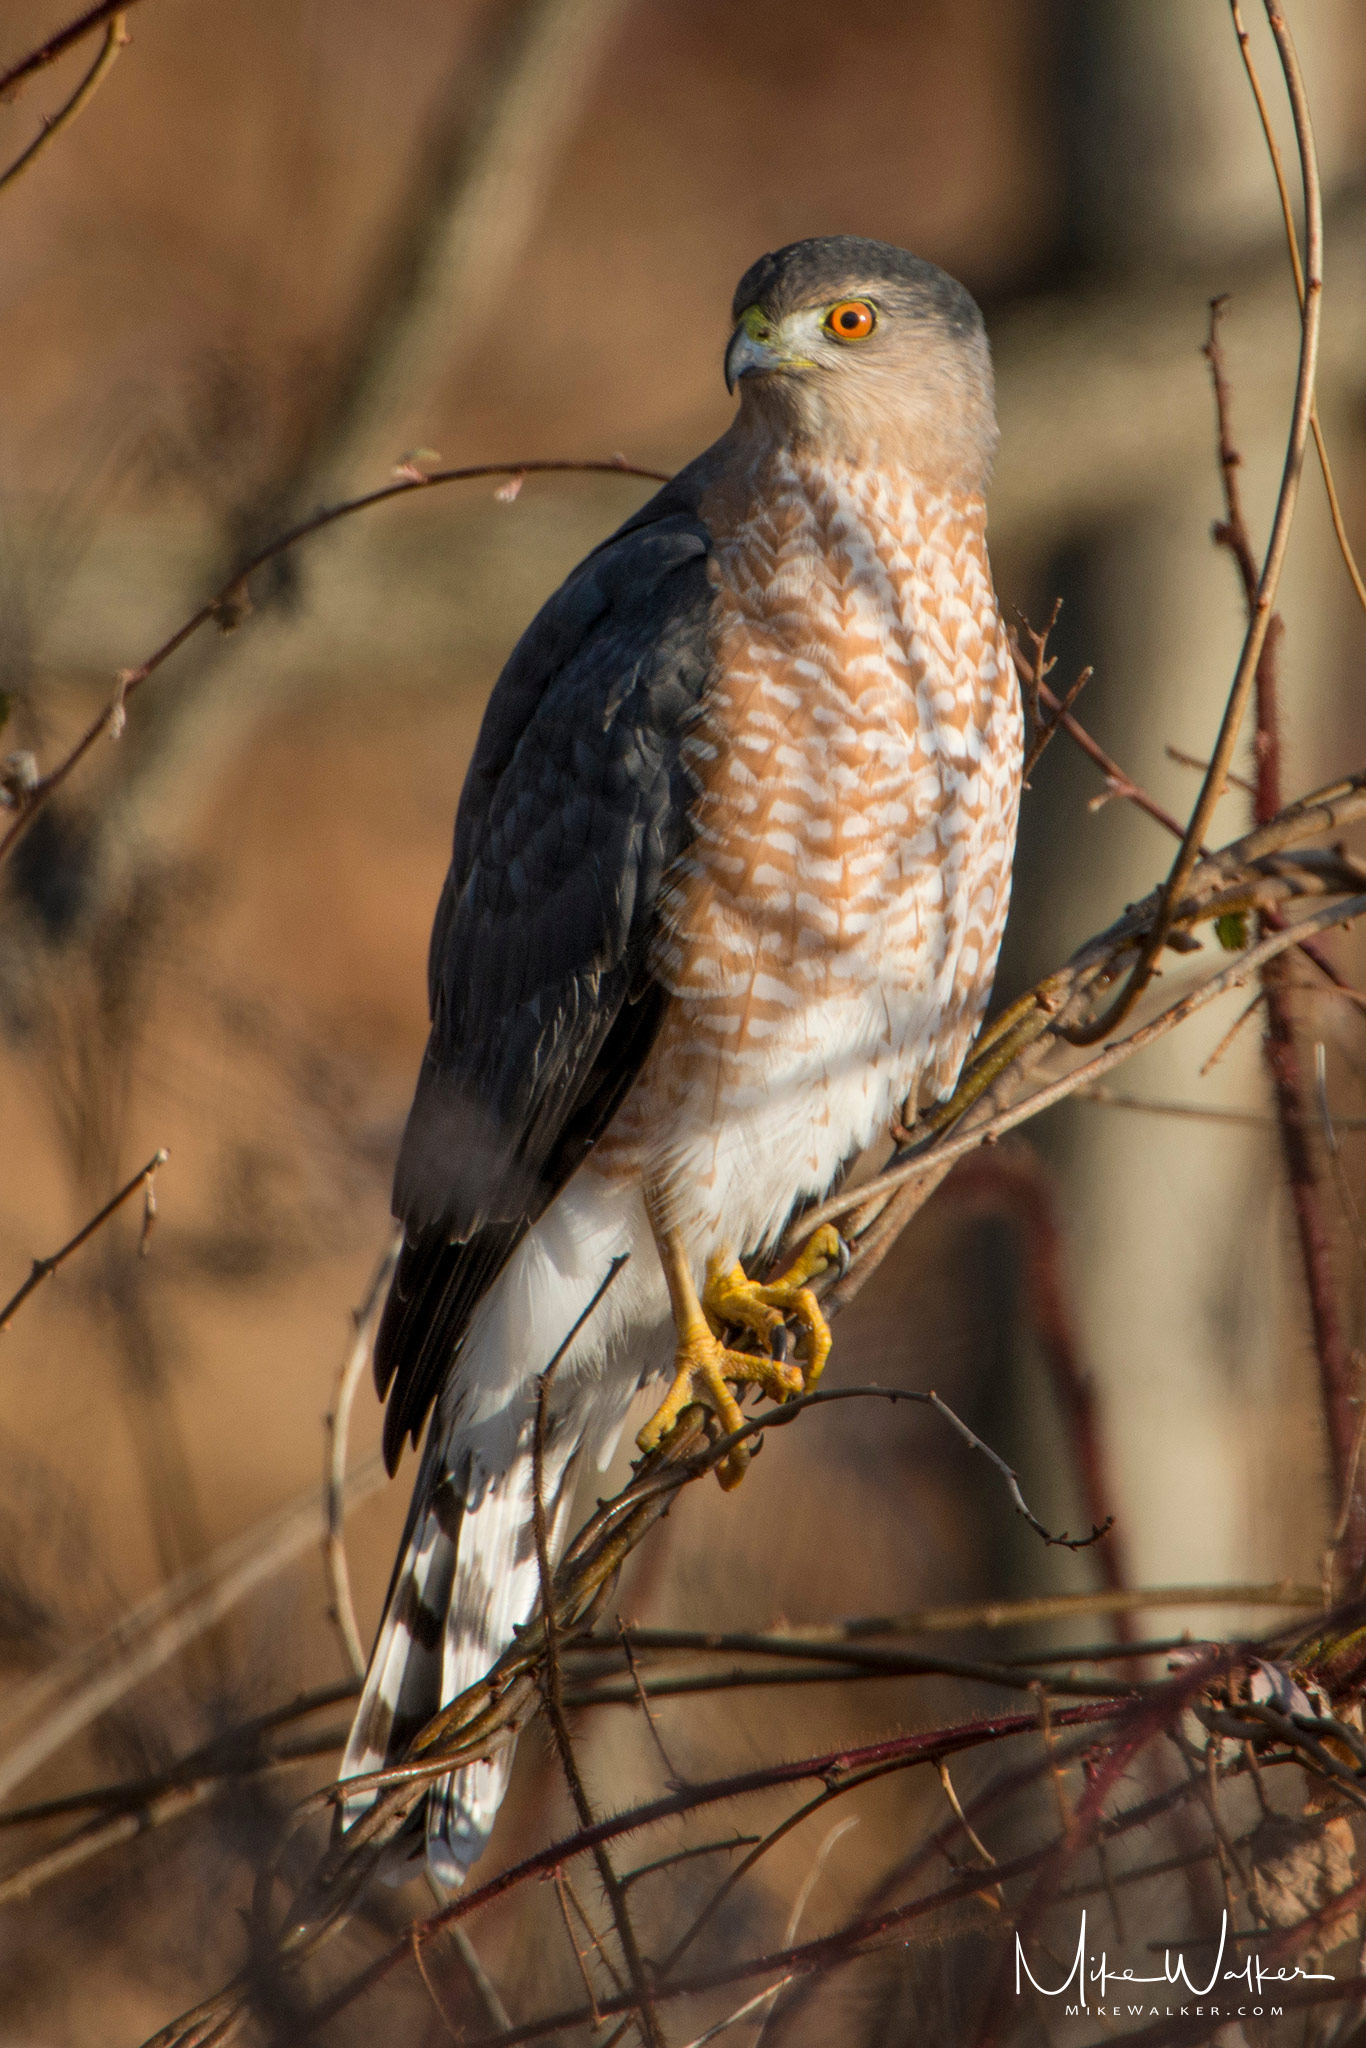 Cooper's Hawk perched on some branches. Nature photography by Mike Walker.